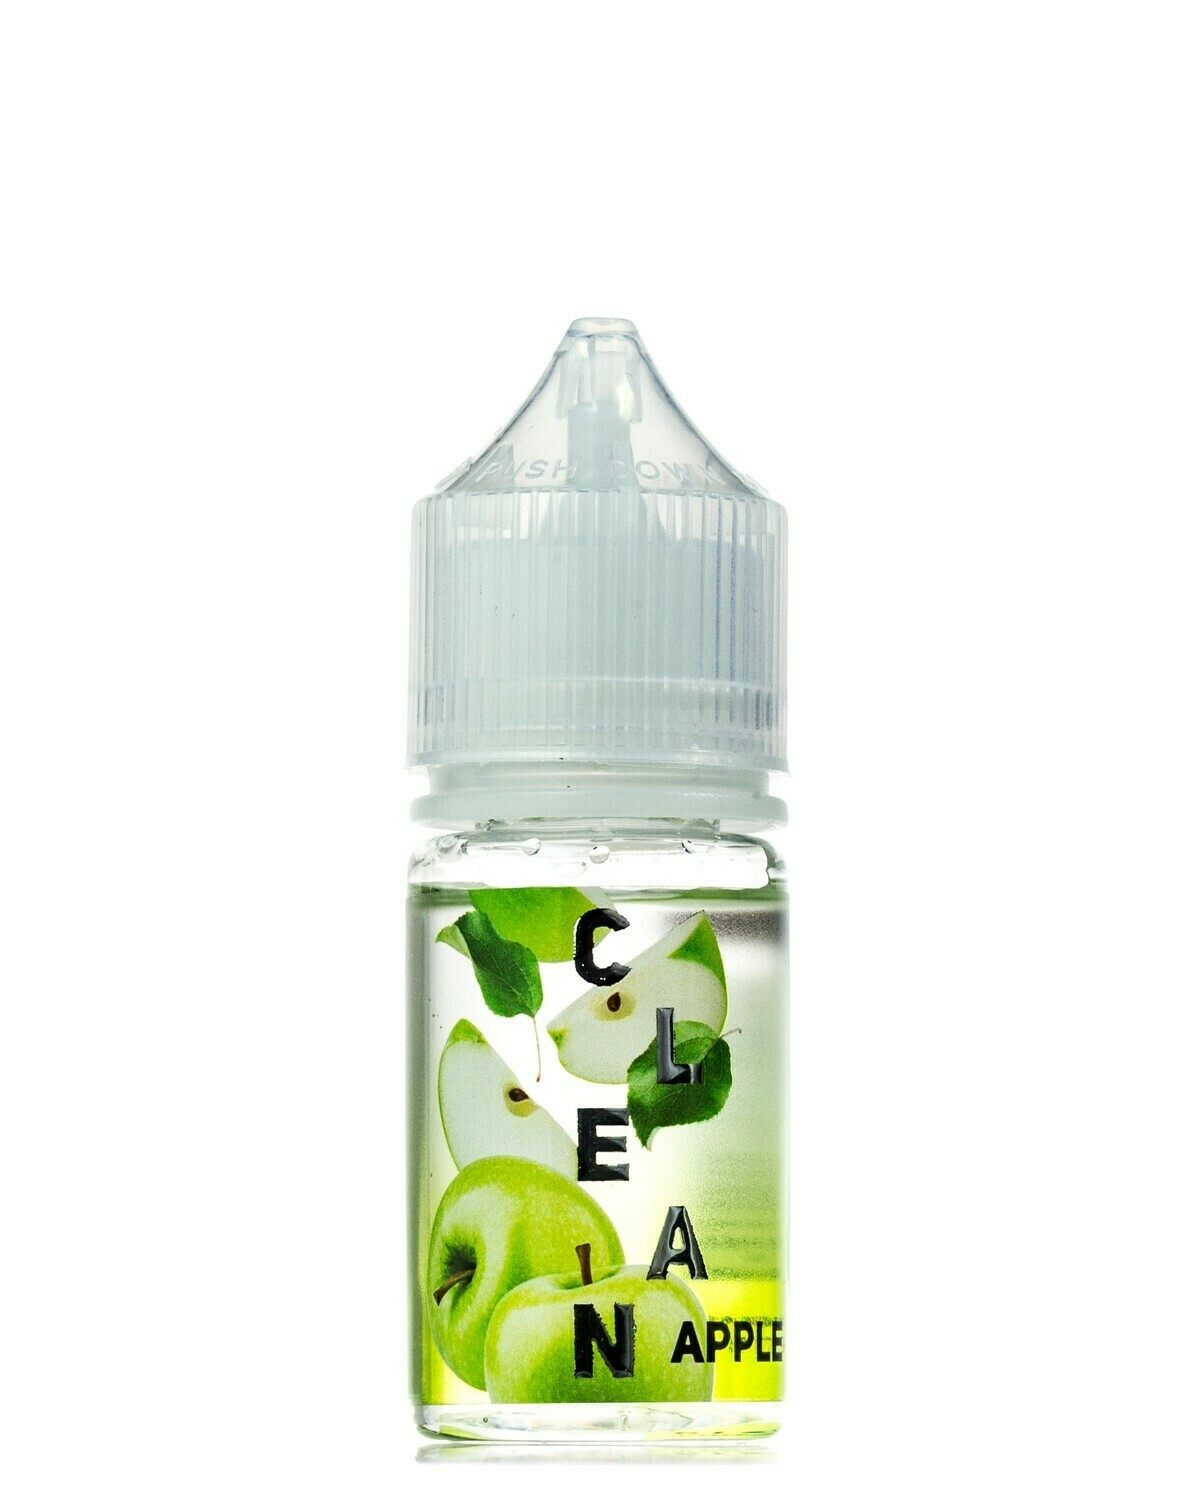 ЖИДКОСТЬ CLEAN BY ДЯДЯ ВОВА: APPLE 30ML